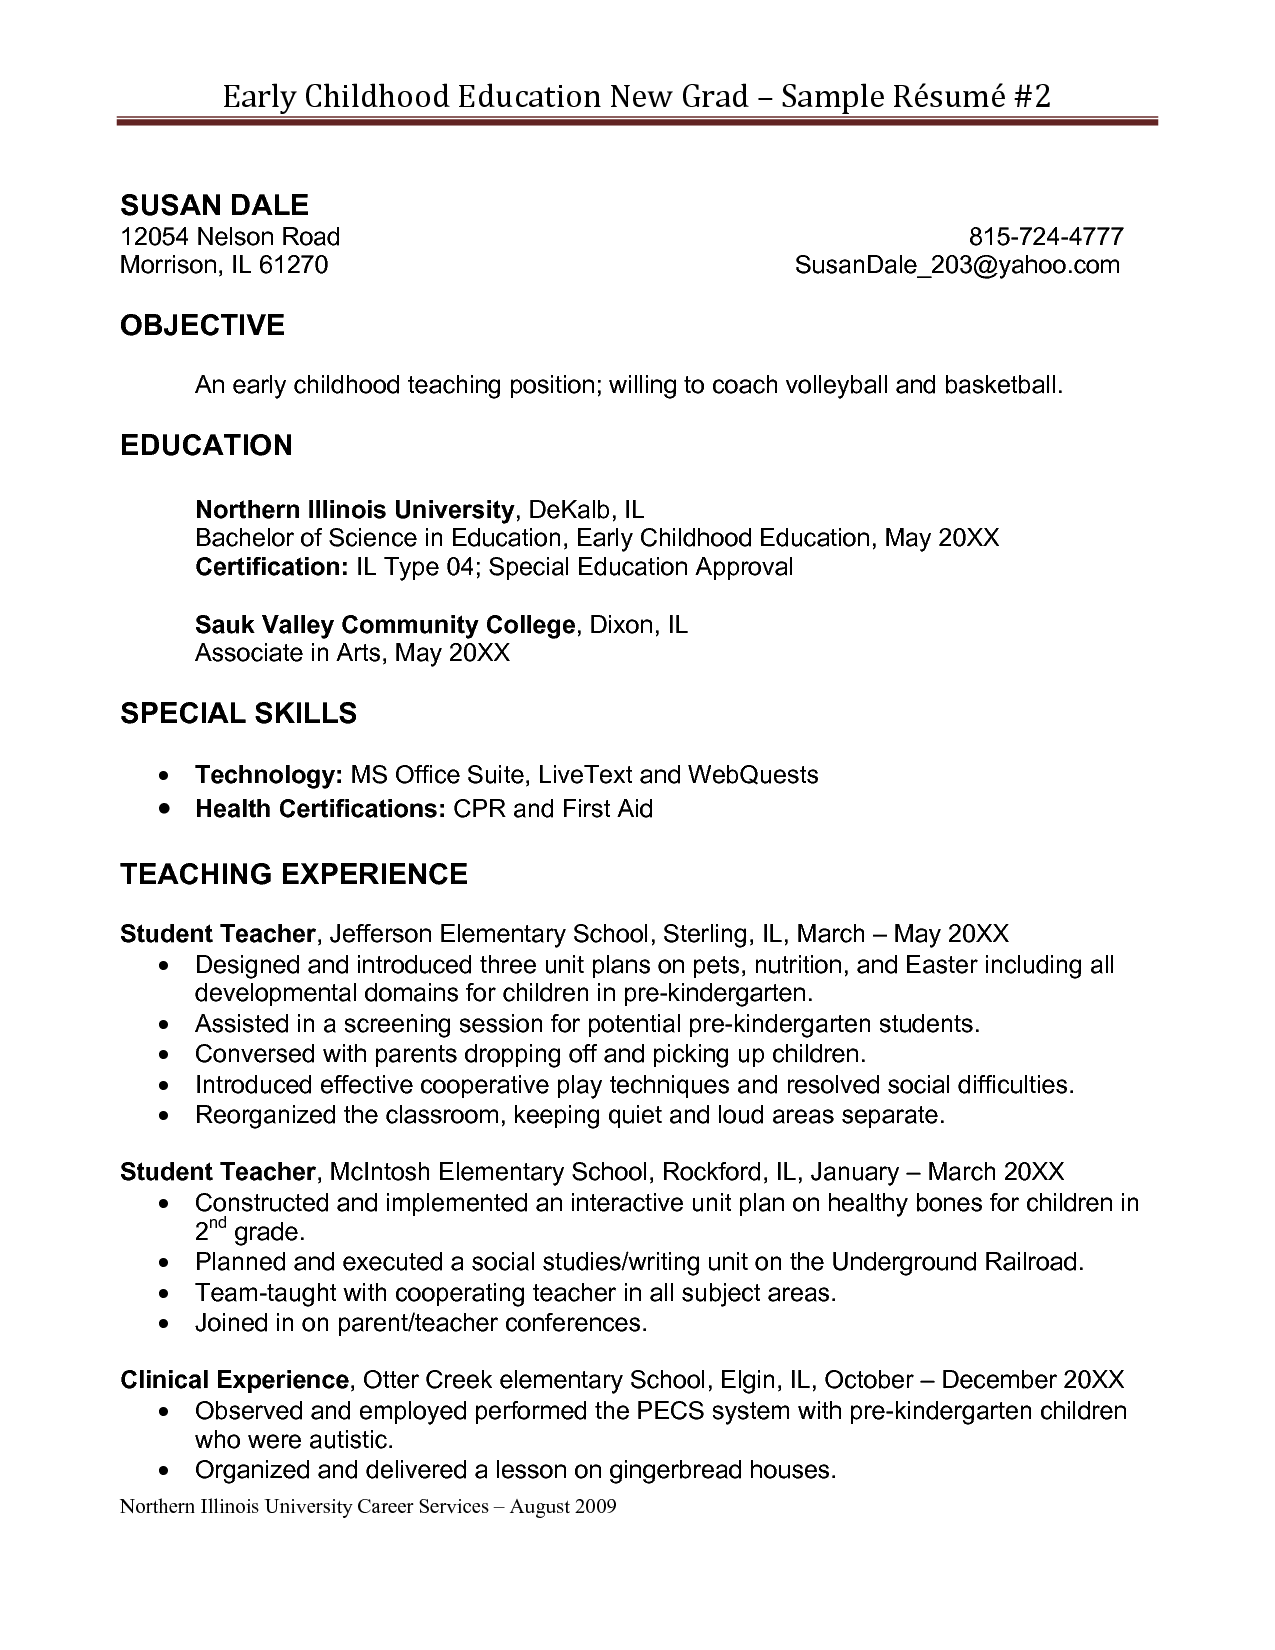 Job Objective For Resume Early Childhood Education Resume Objective  Shebs  Pinterest